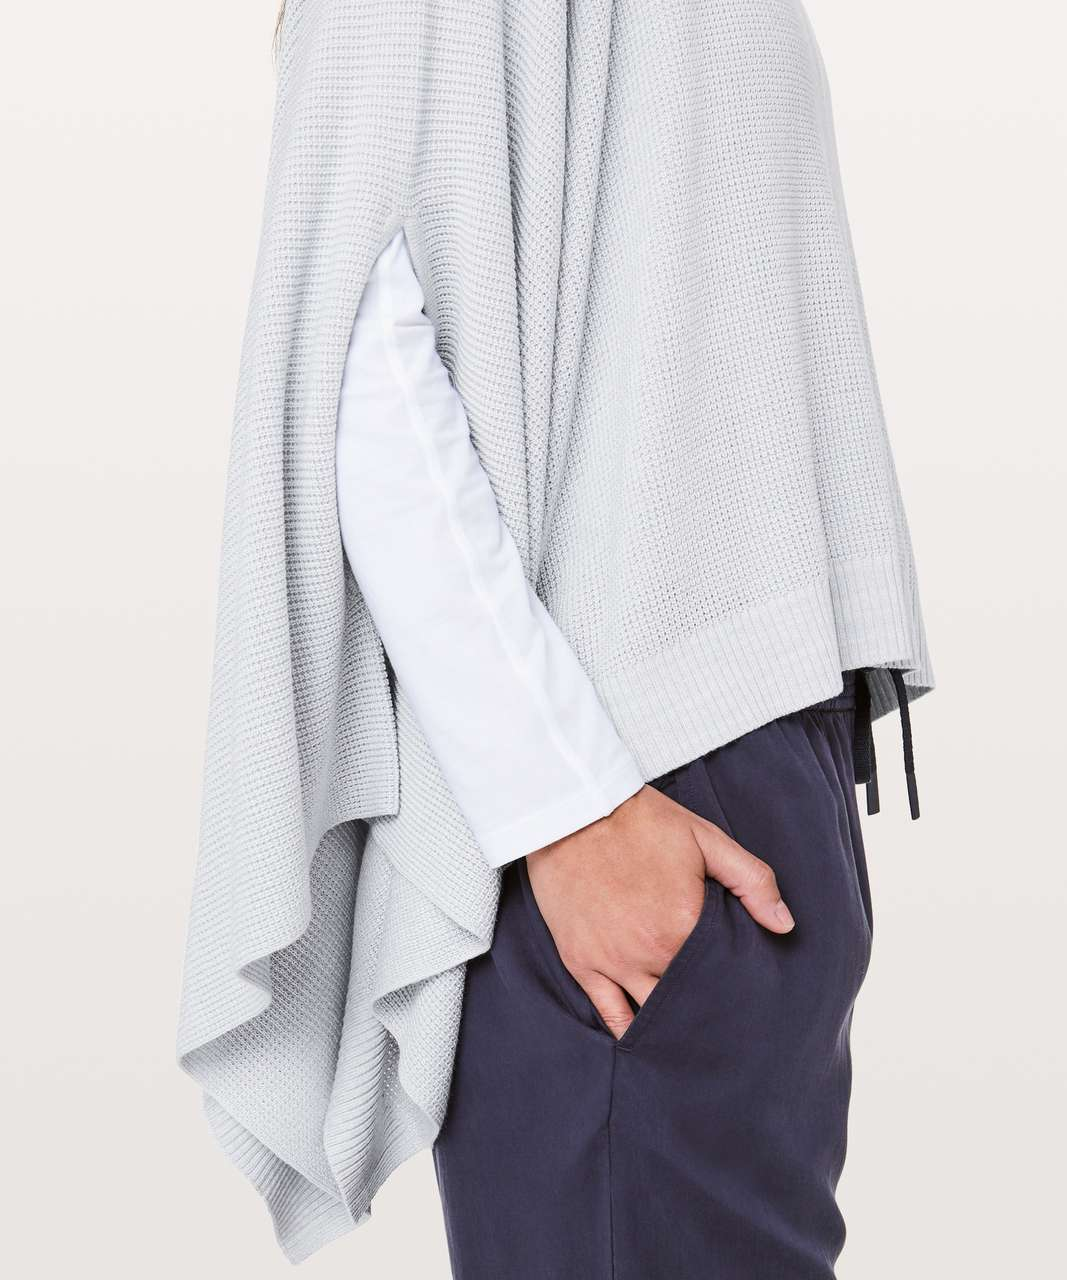 Lululemon Forward Flow Cape - Silver Fox / Alpine White (First Release)